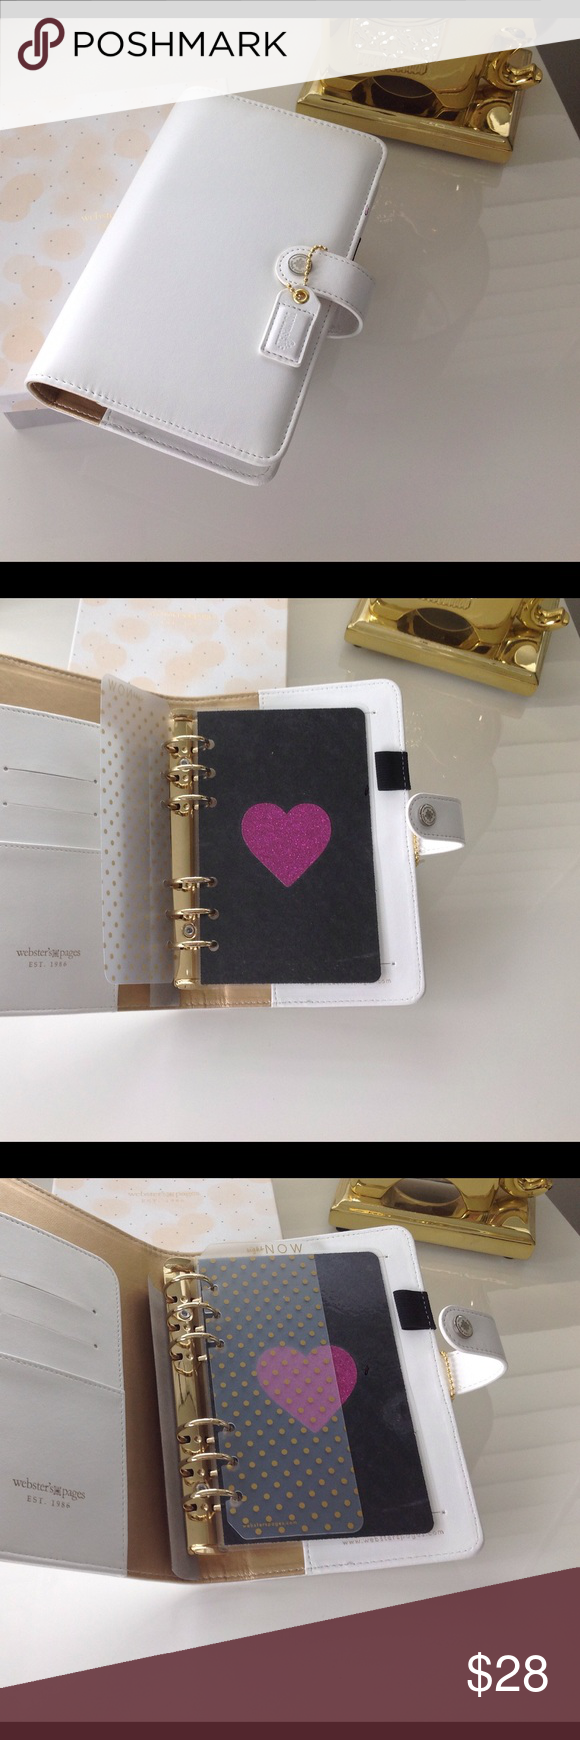 "Brand New White Agenda 💗💞💗 Brand New, no tags. Pretty White Agenda by Webster. It comes with one divider. It's 8"" X 5"" with 6 rings, all the rings are tight with no gap. It has slots for cards also.💗💞💕 Webster Accessories Key & Card Holders"